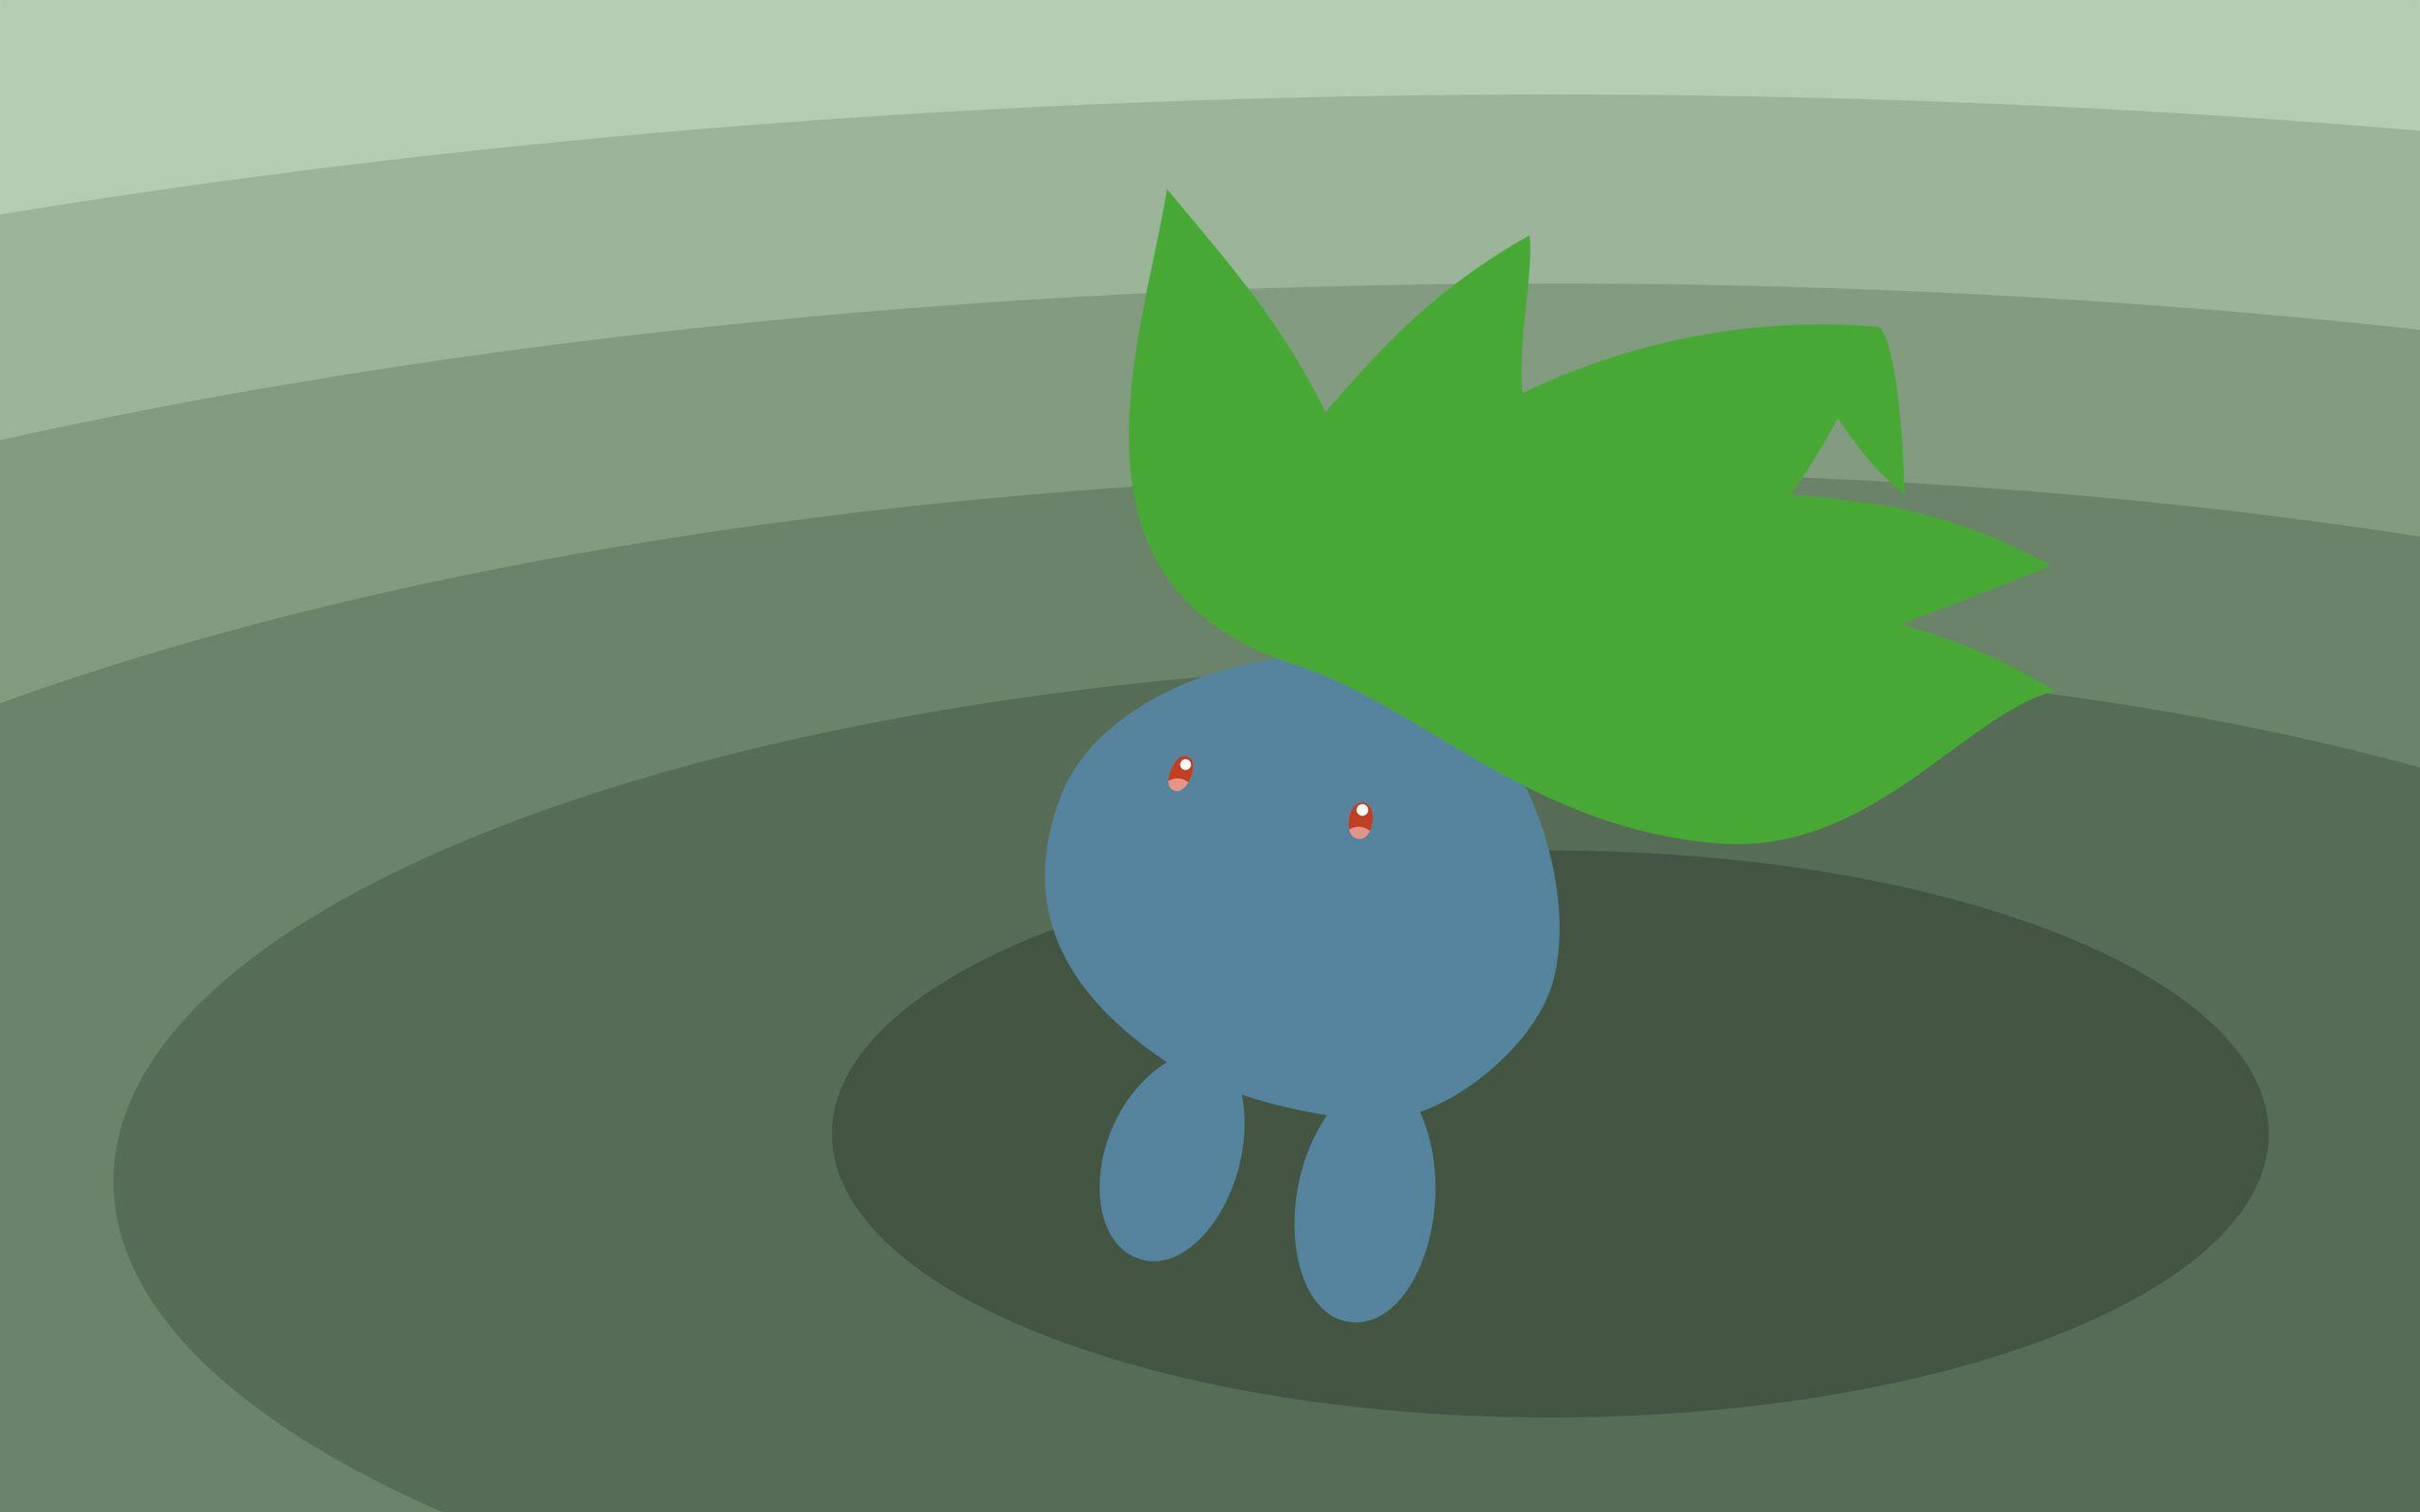 Pkmn 043 Oddish by Senzune on DeviantArt